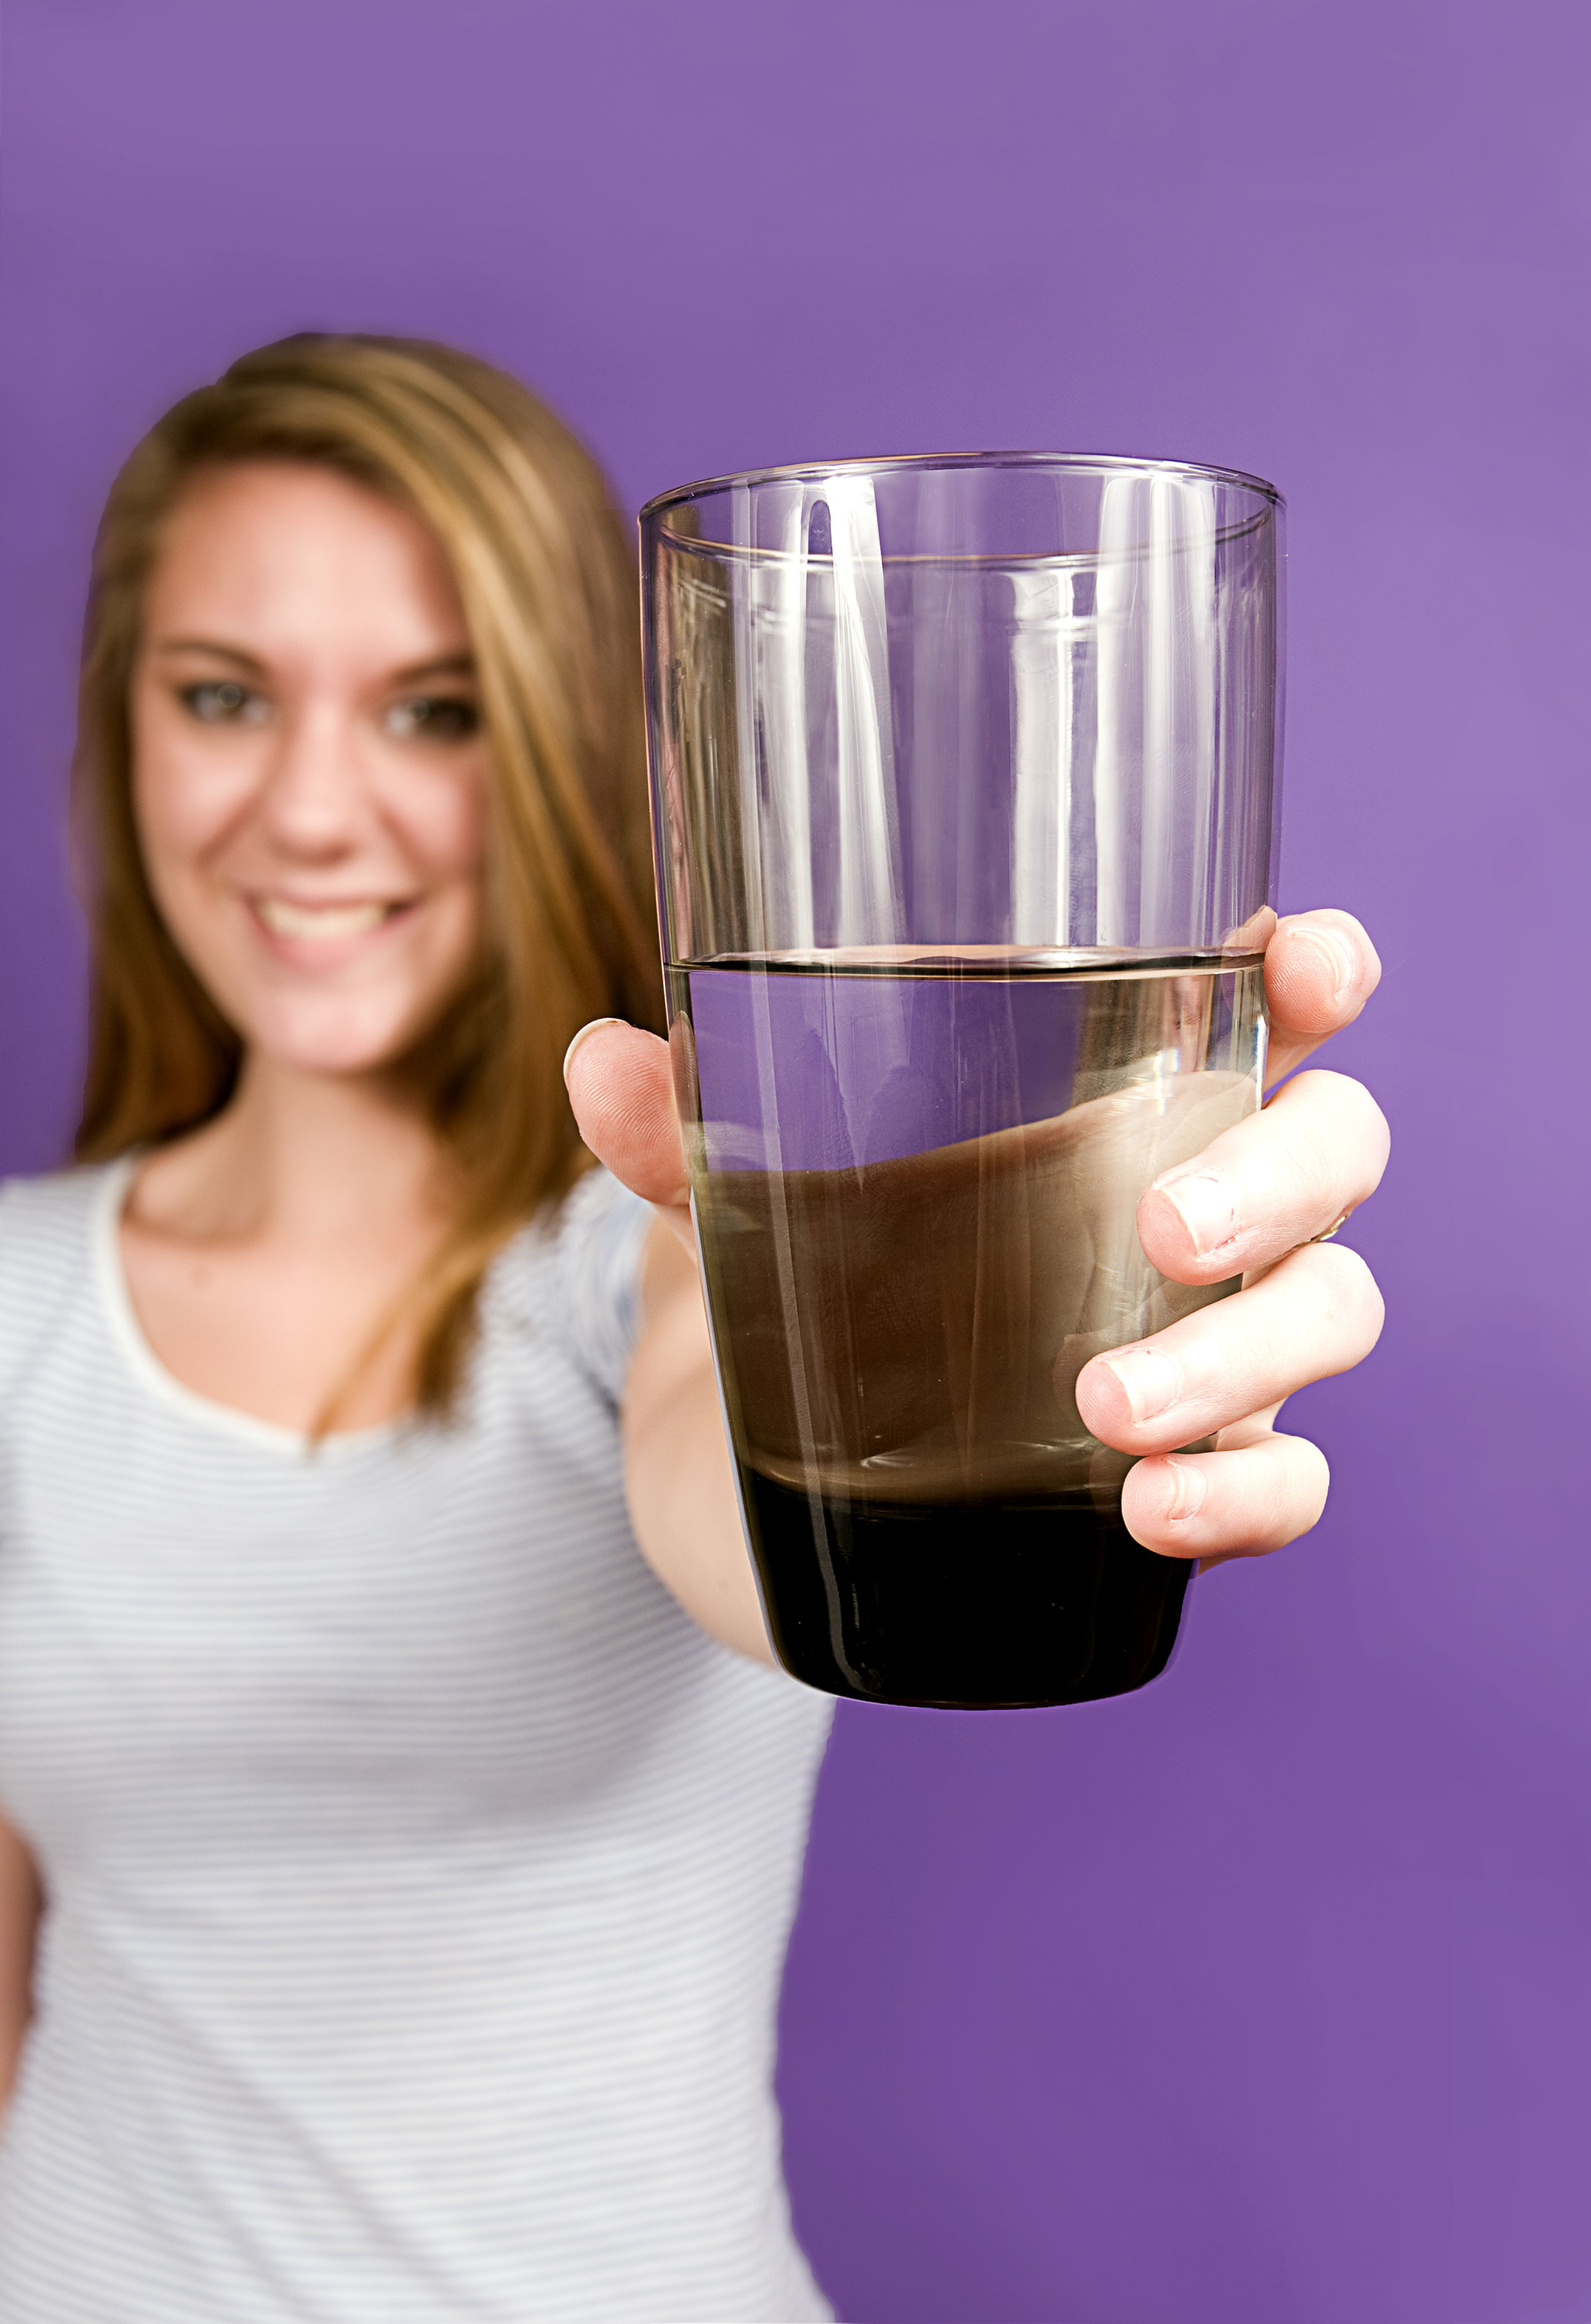 Free picture cute young woman offering clean glass water